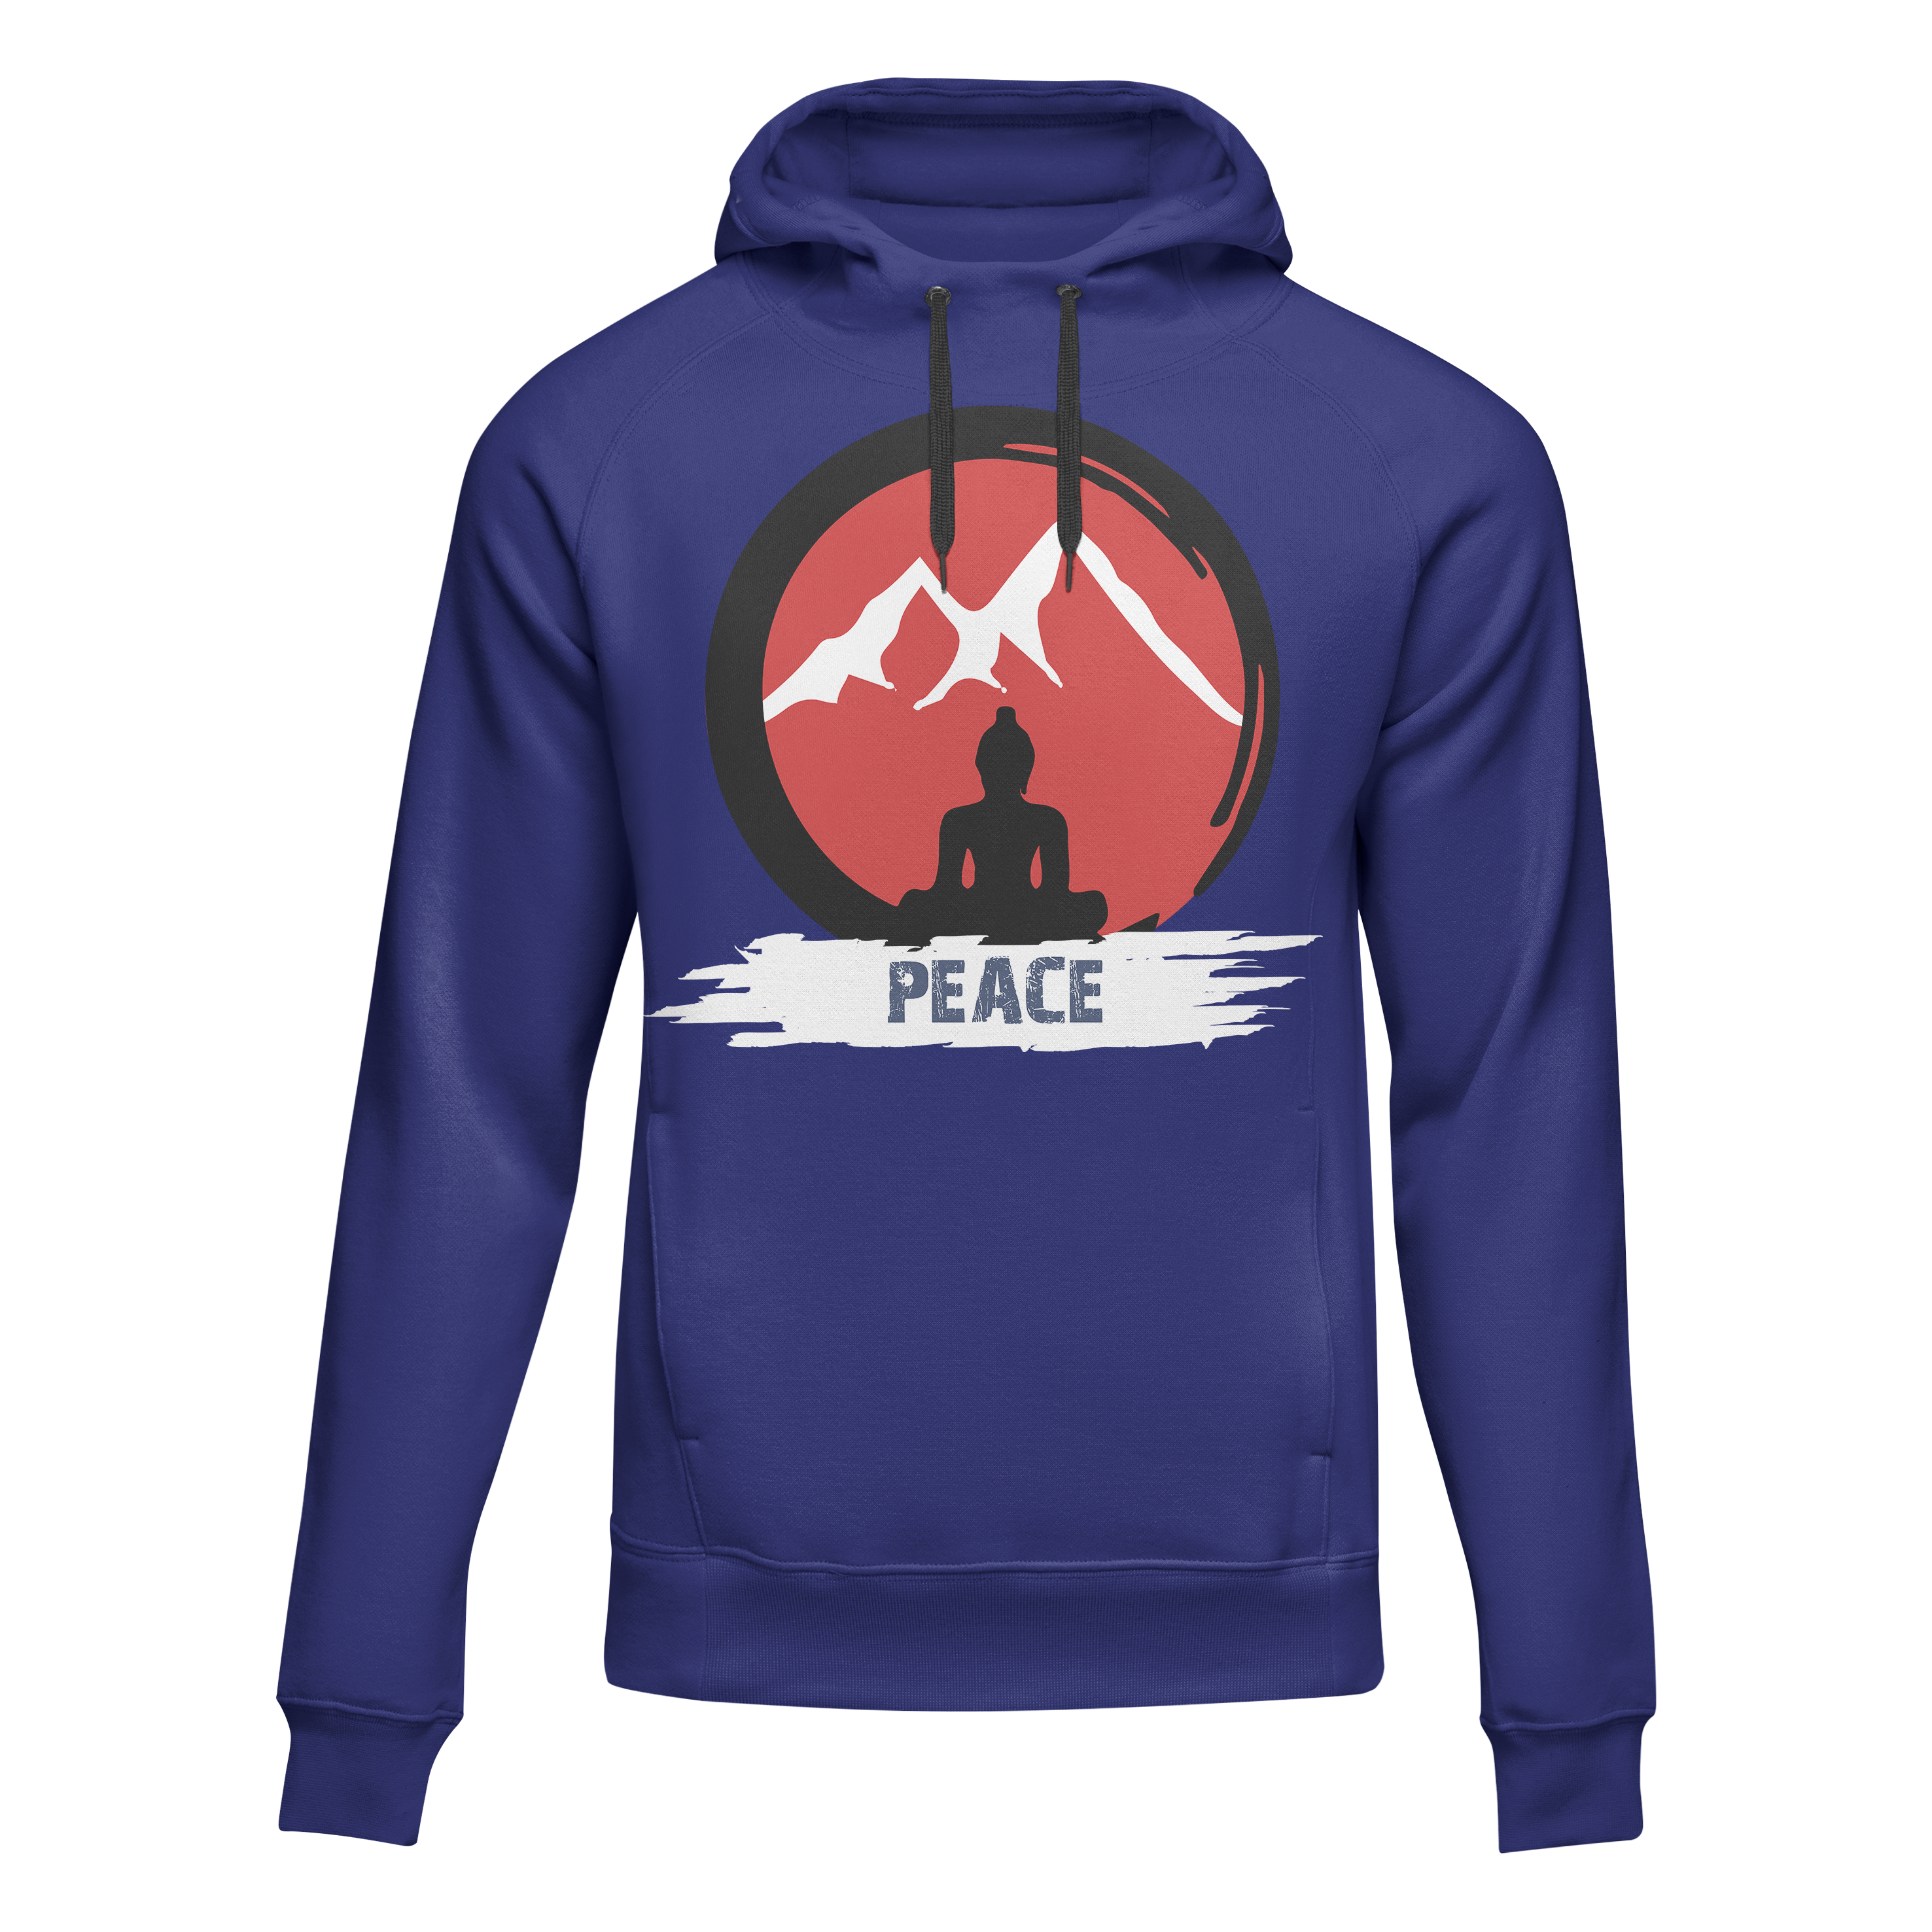 I will do creative and exclusive Hoodie design